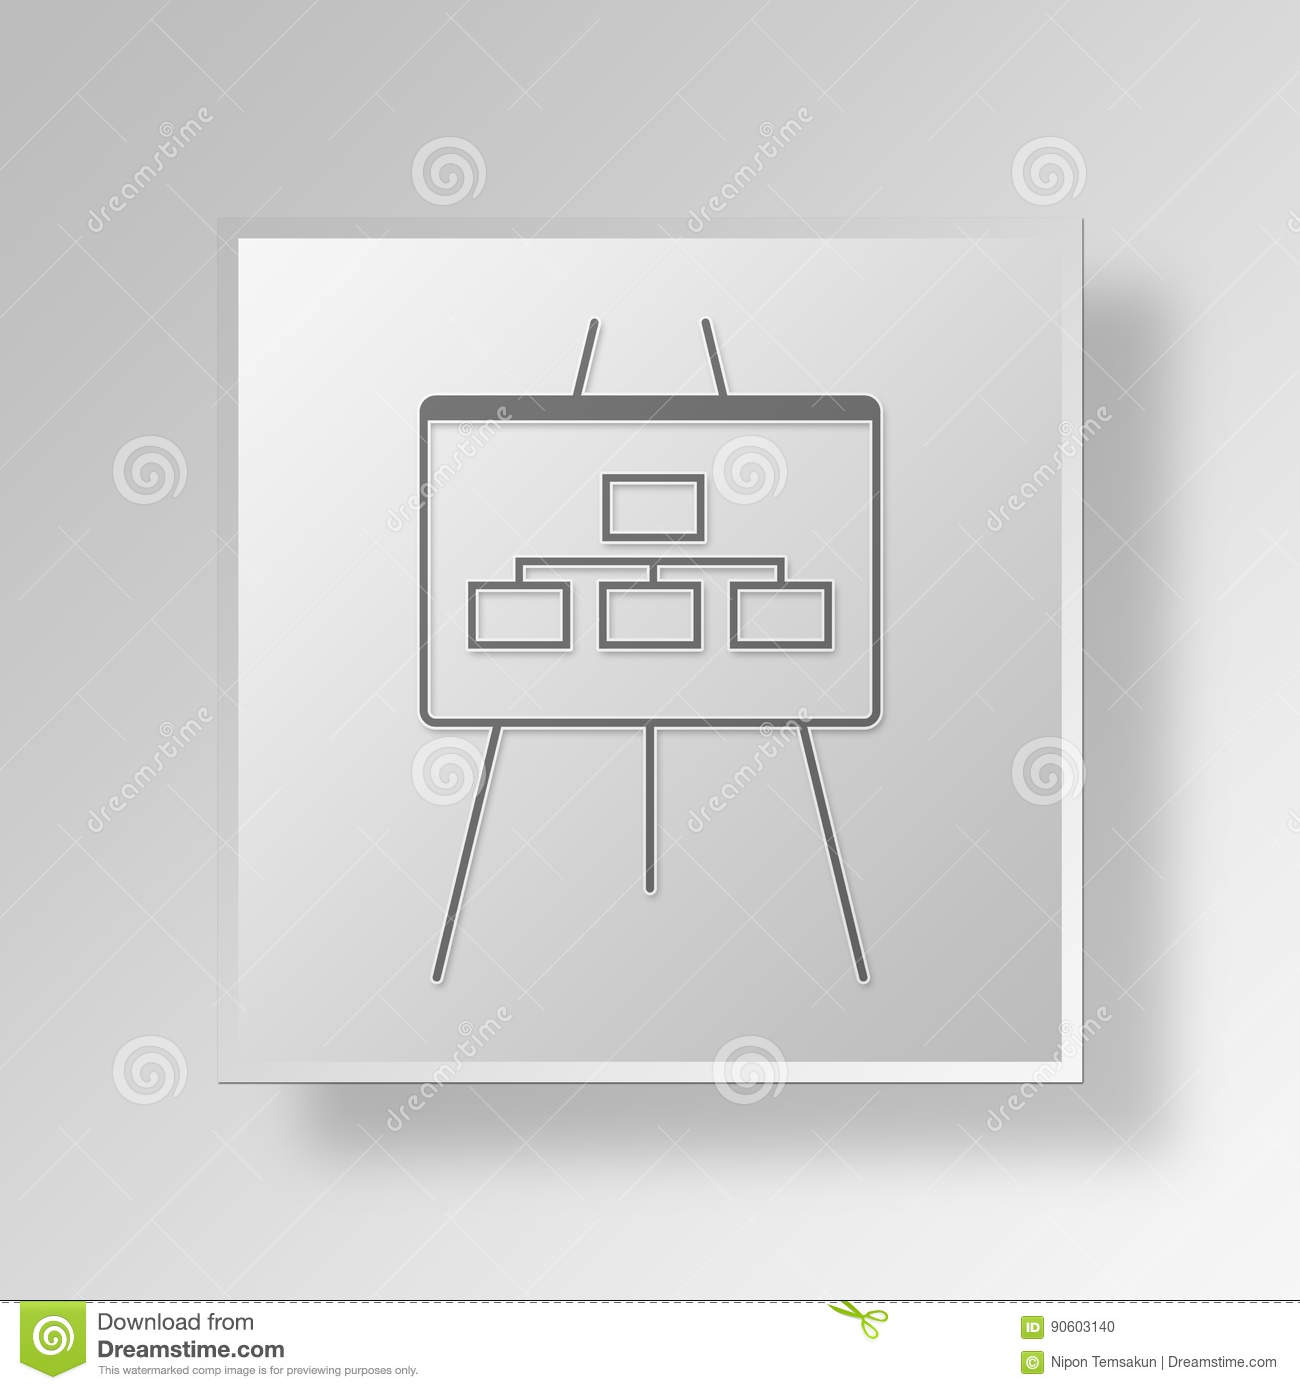 hight resolution of 3d flow chart icon business concept